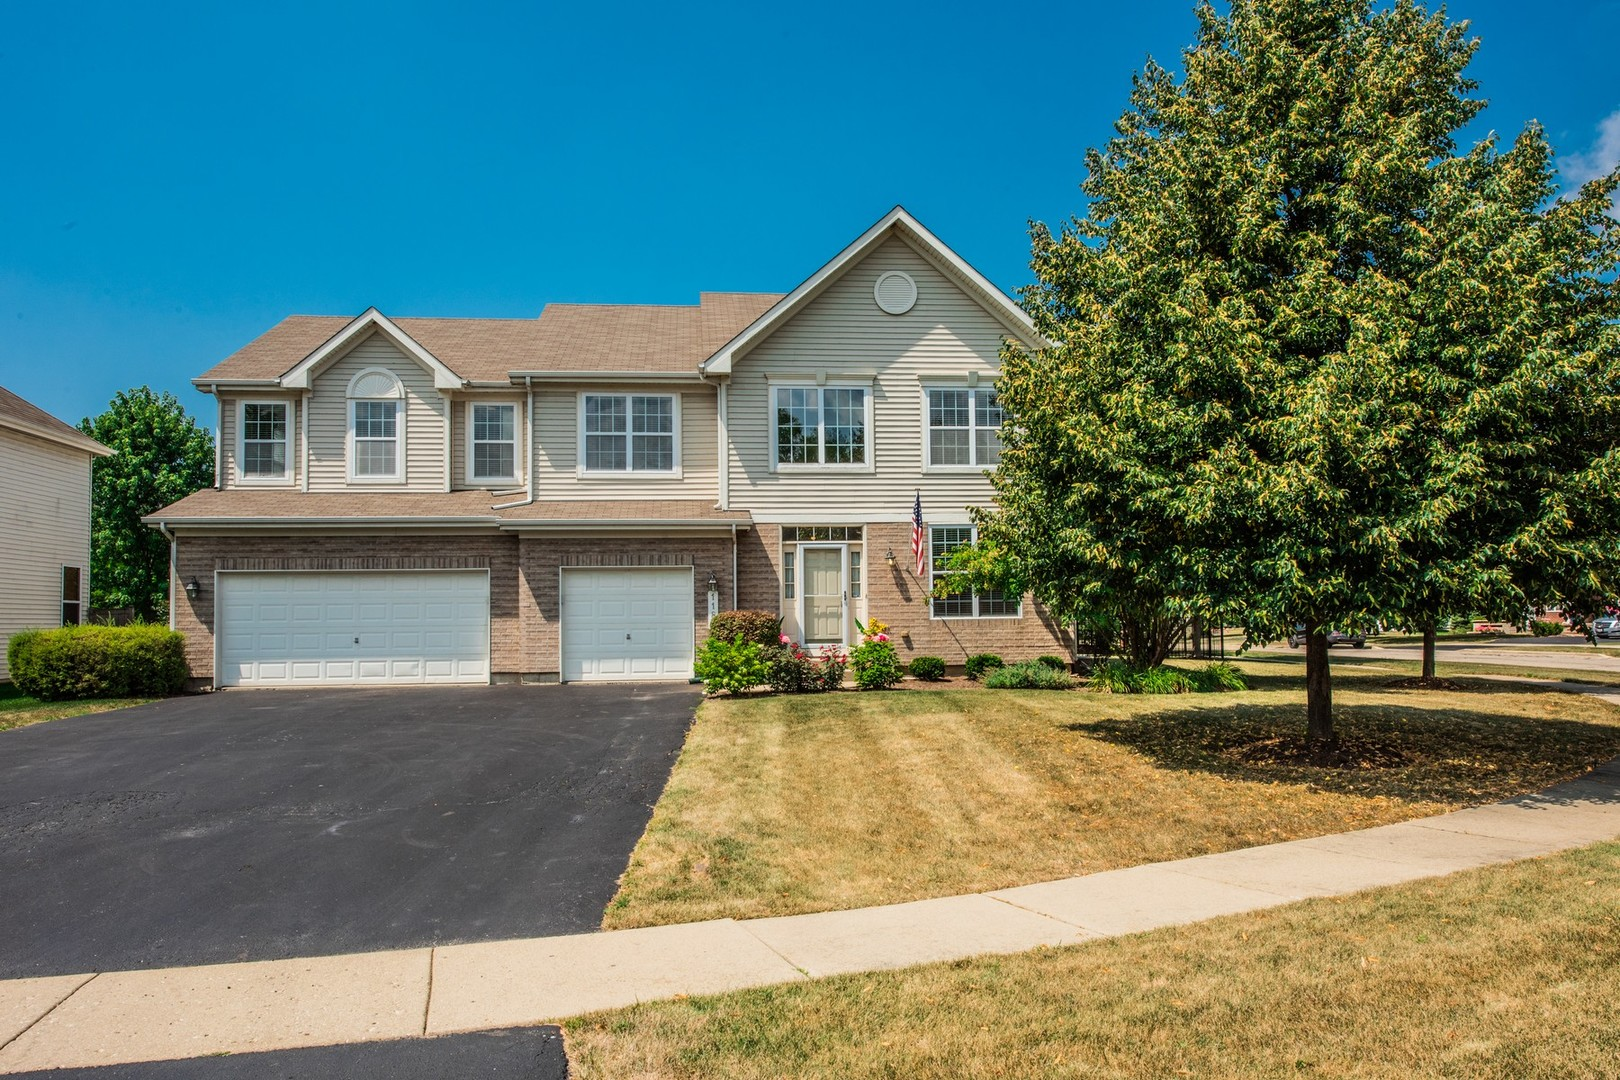 1184 Tulip Tree Lane, Lake Villa, Illinois 60046